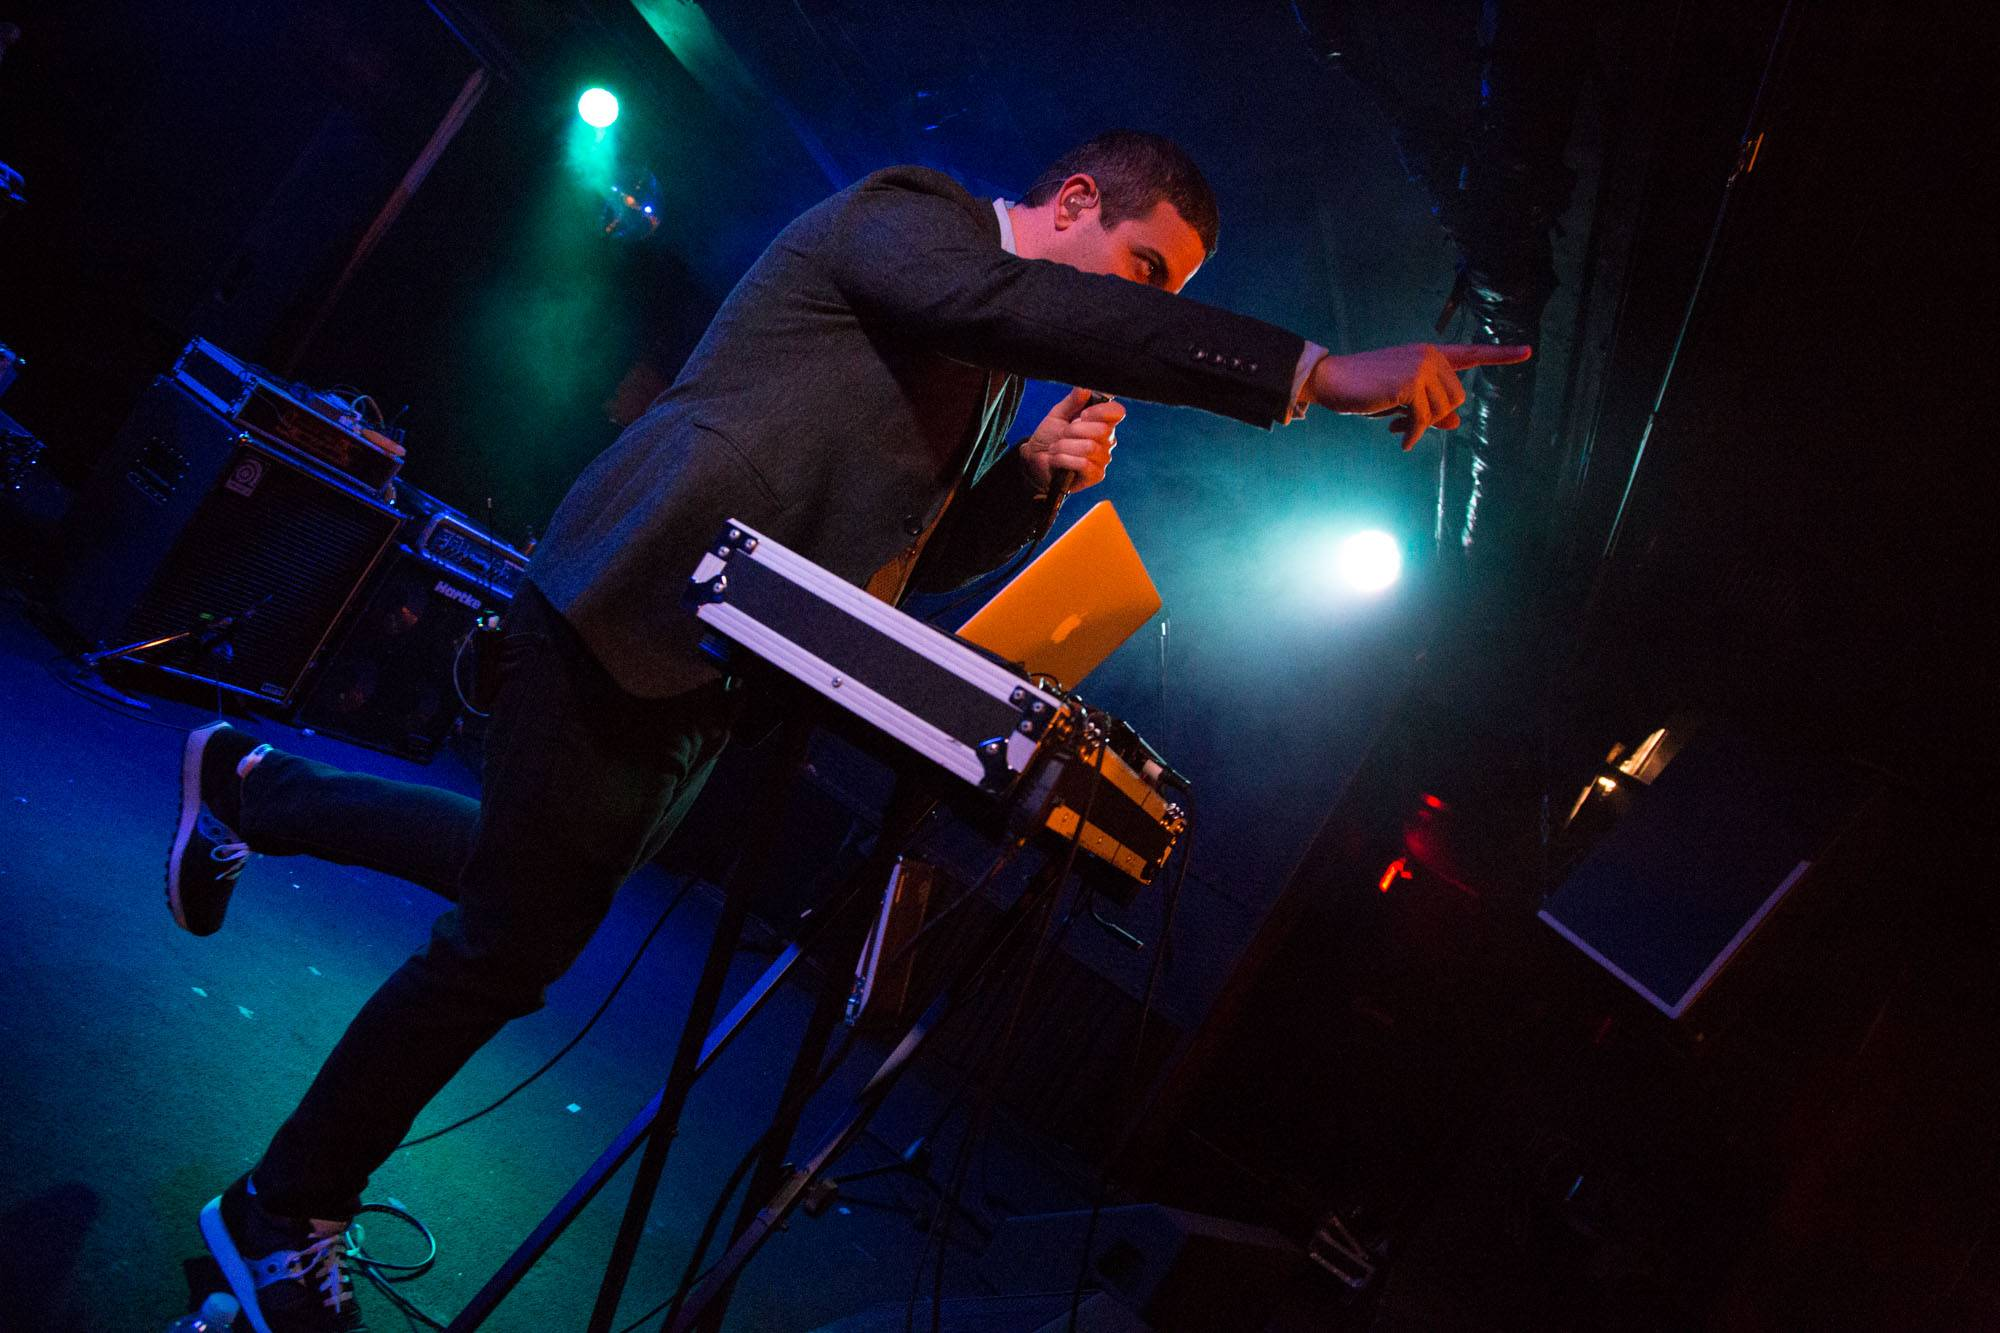 Say Hi at the Biltmore Cabaret, Vancouver, Oct 2 2015. Kirk Chantraine photo.